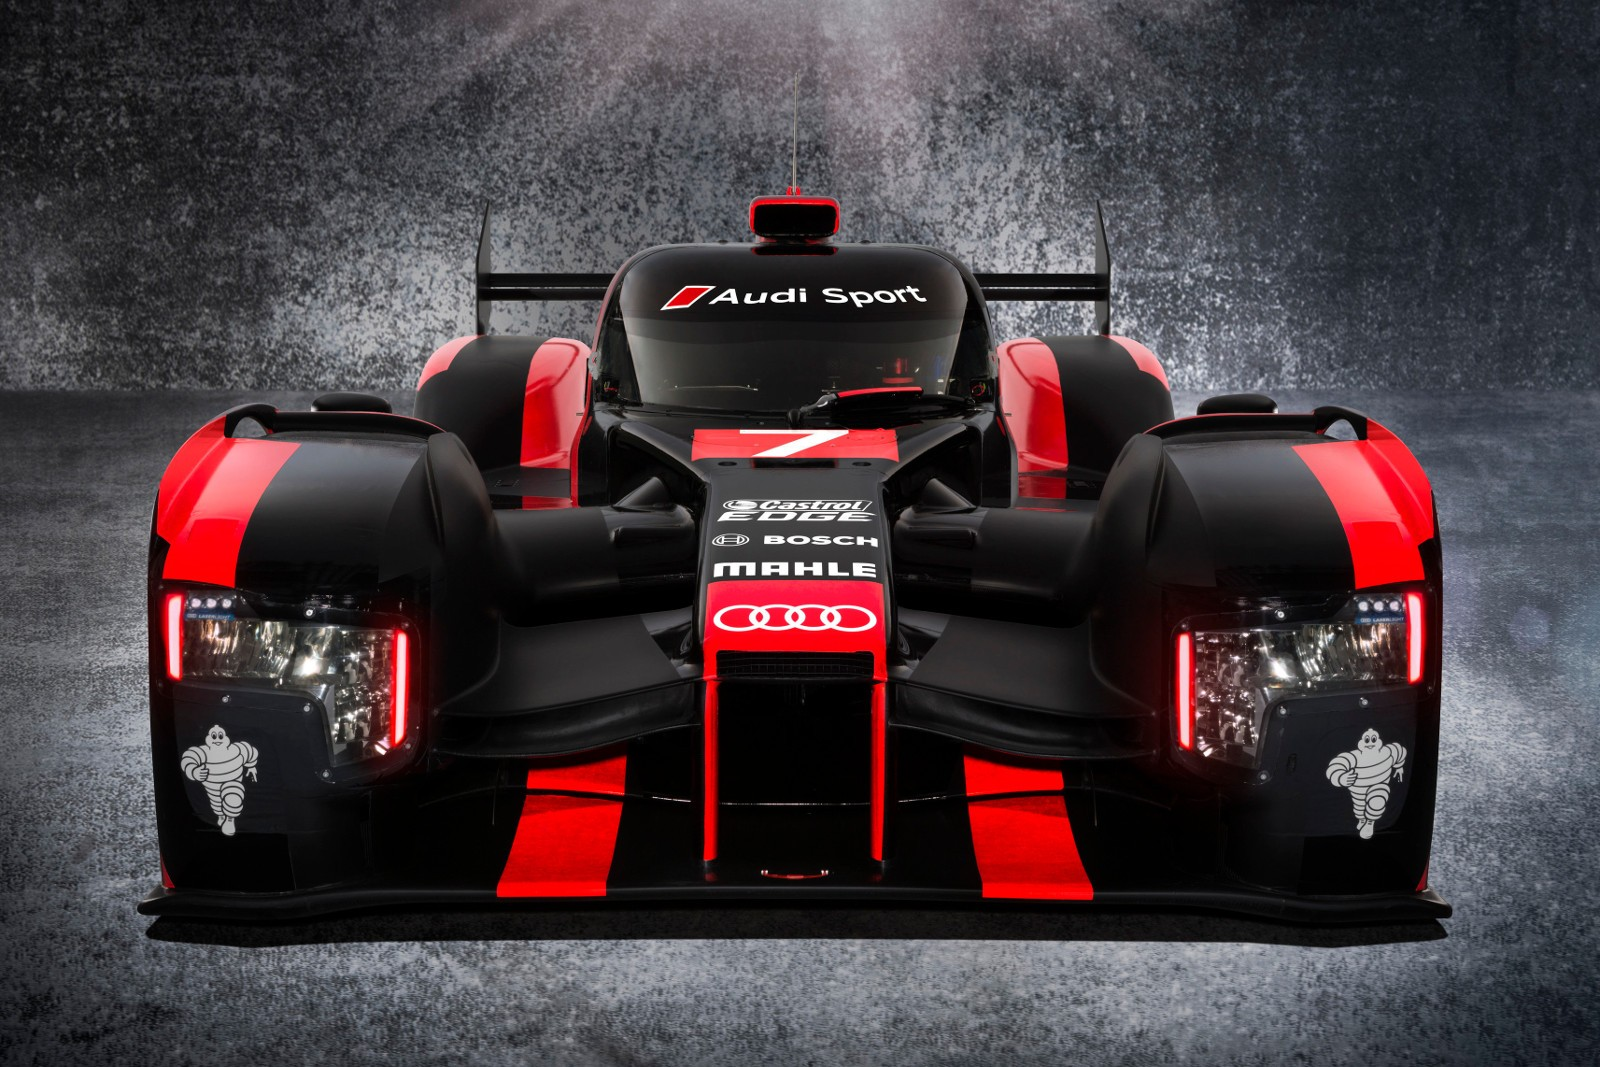 2016 Audi R18 e-tron quattro Le Mans Prototype Is Against ...